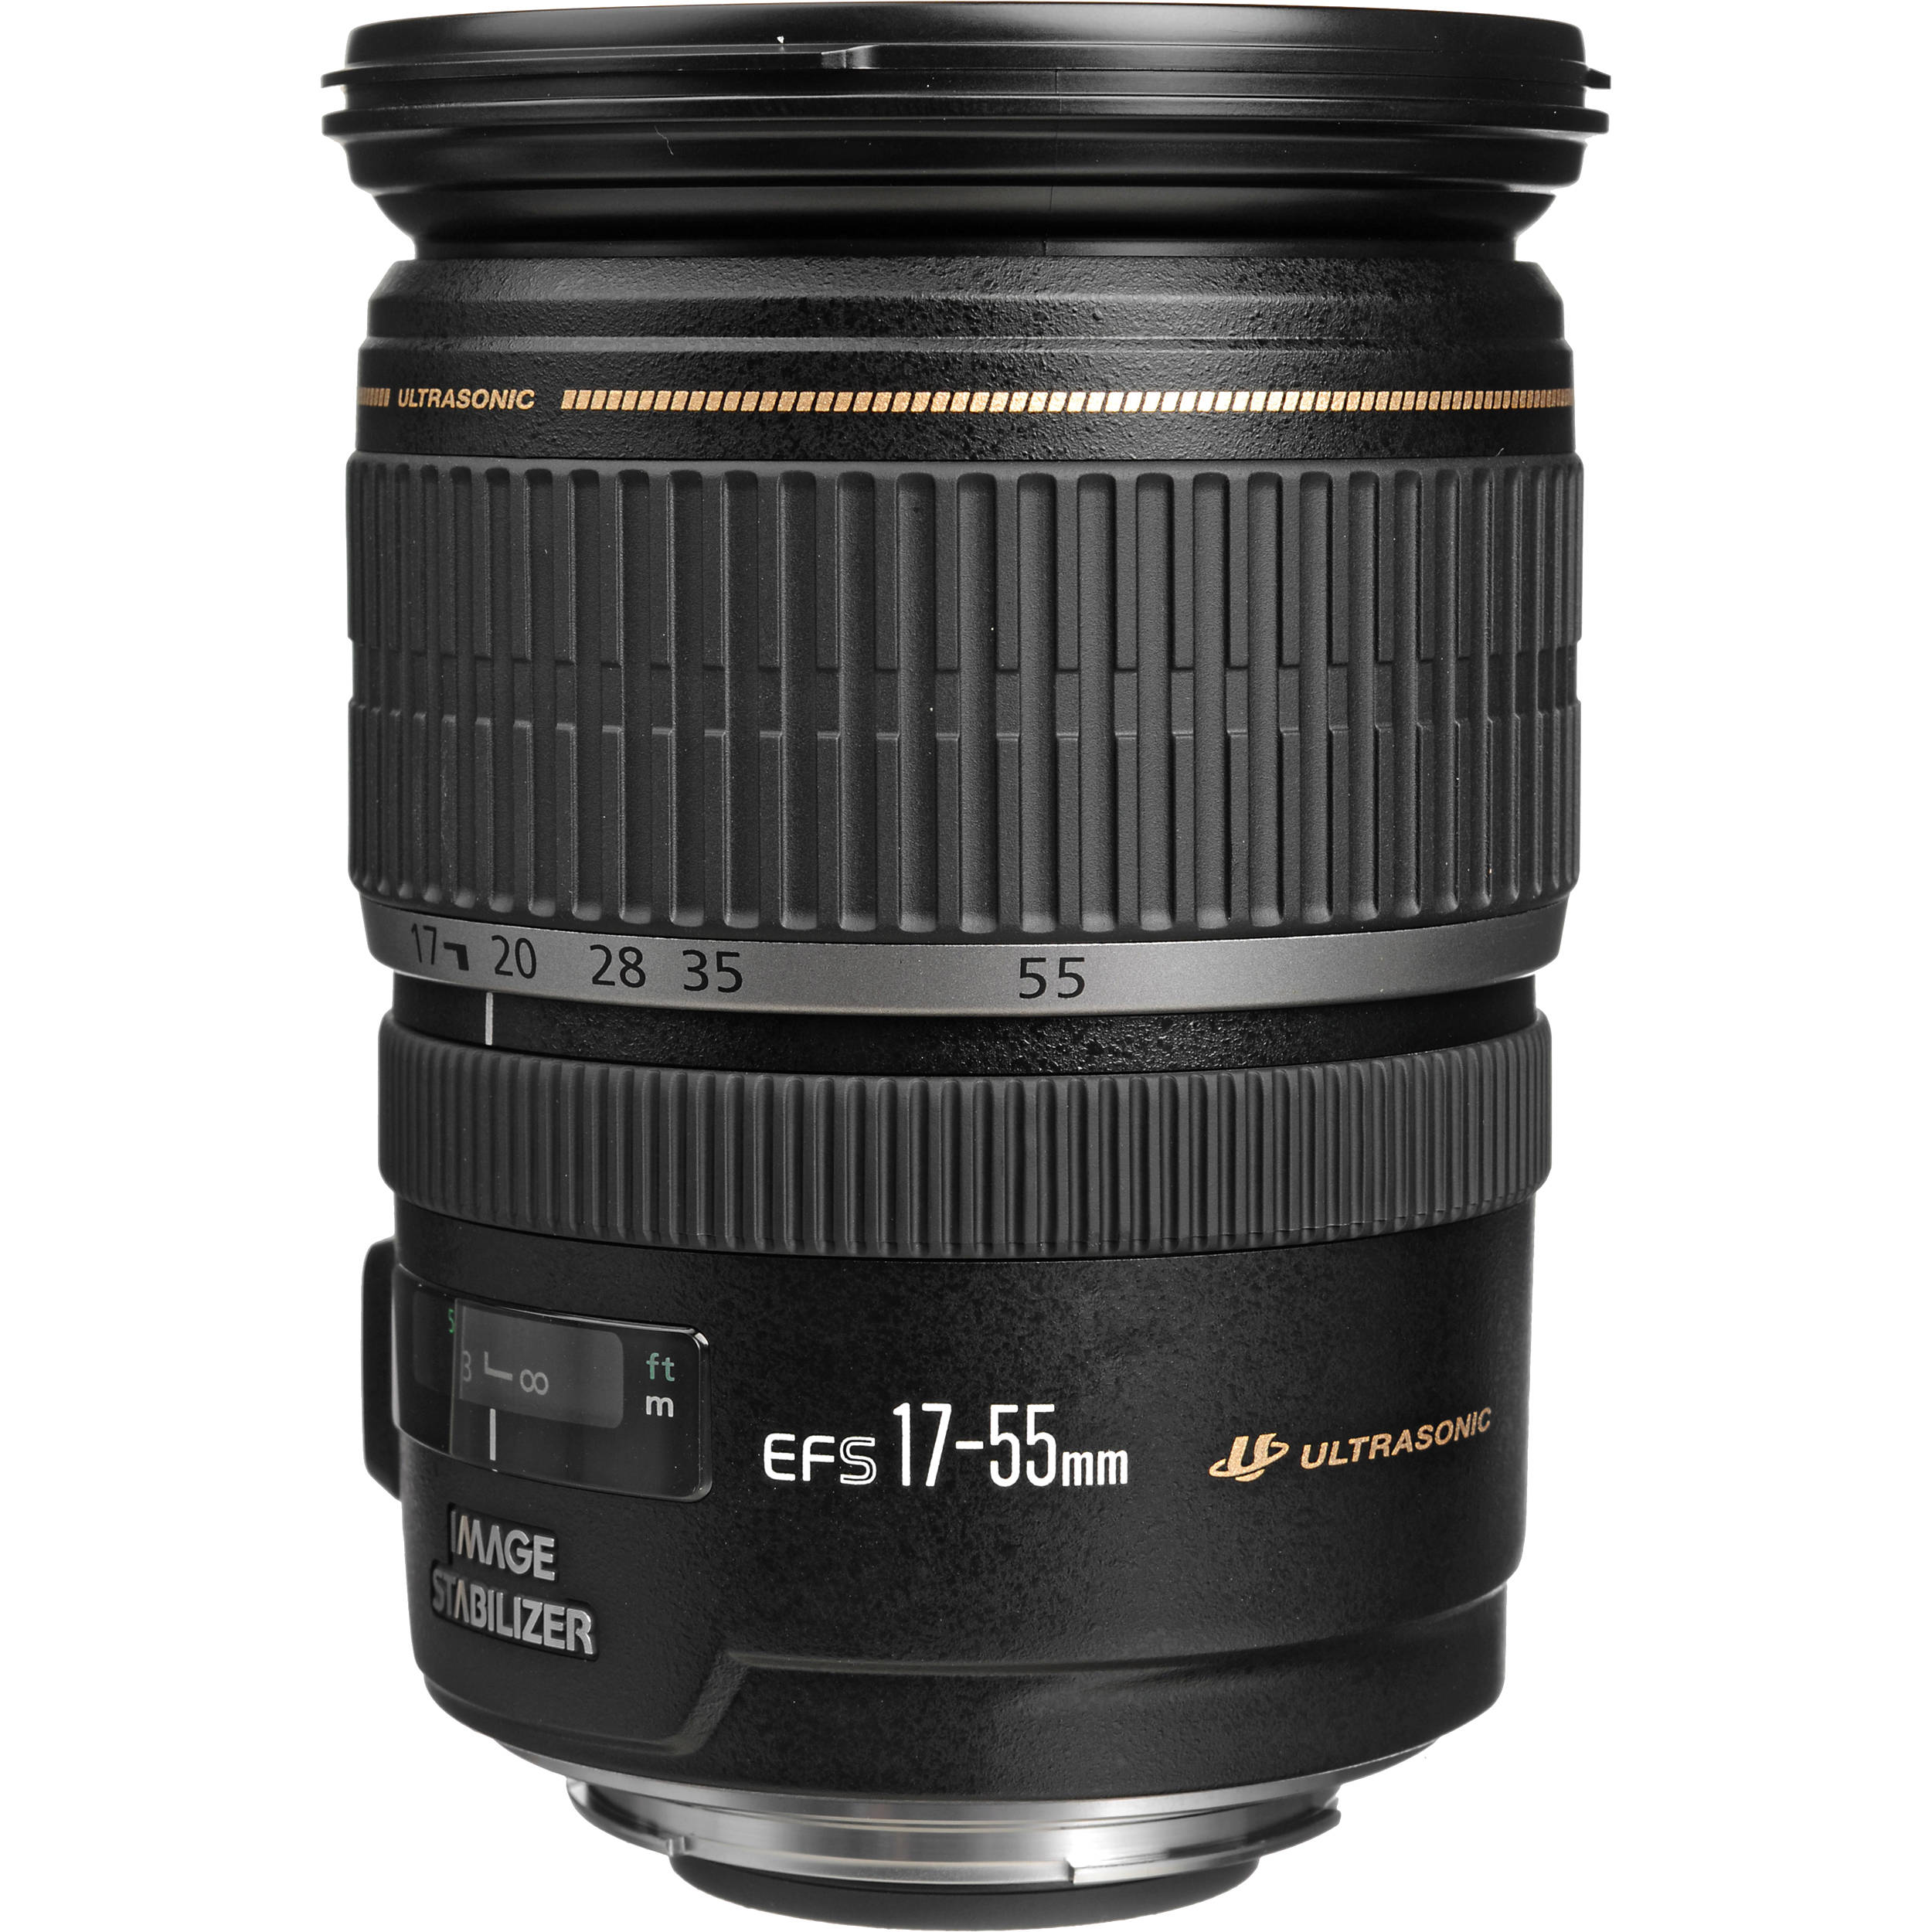 Canon EF-S 17-55mm f/2.8 IS USM Lens 1242B002 B&H Photo Video